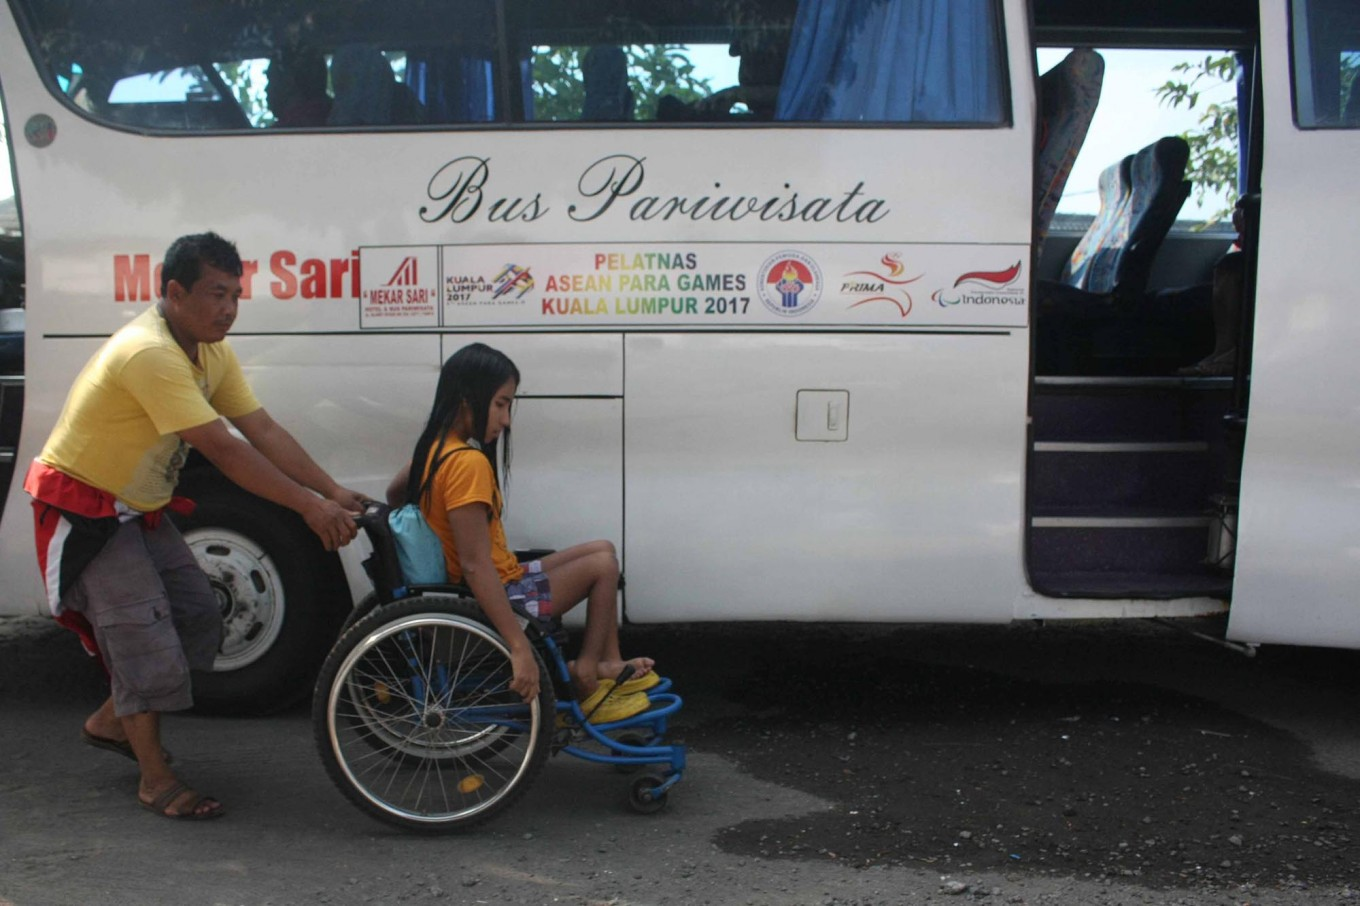 An NPC official pushes wheels an athlete to board the bus as the Indonesian delegation departs on their journey to the top. JP/Maksum Nur Fauzan